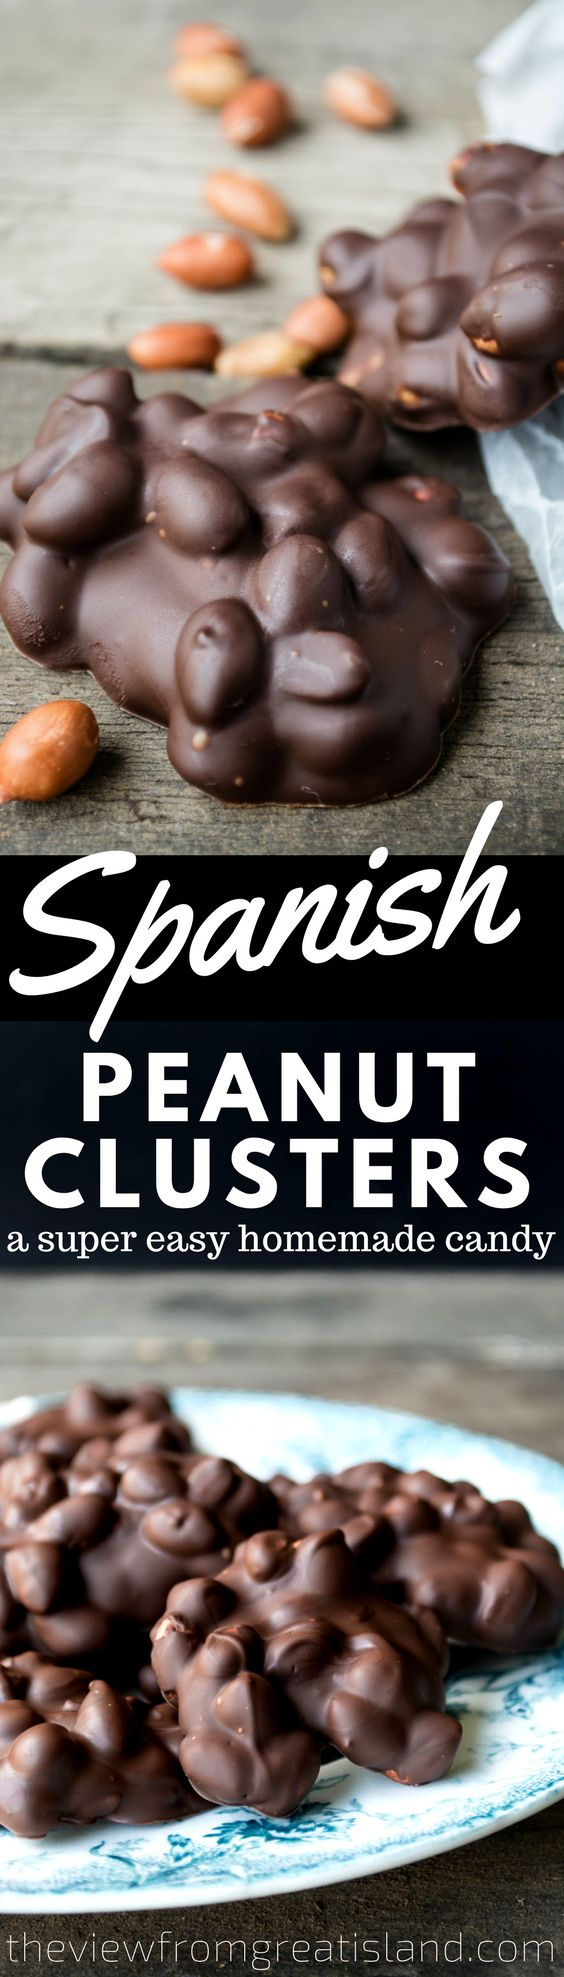 Spanish Peanut Clusters are the easiest homemade candy ever, and everyone goes 'nuts' for them! #candy #bark #chocolate #peanuts #nuts #nutcandy #homemadecandy #peanutbark #dessert #holidaycandy #foodgift #holidayfoodgift #Christmascandy #candyrecipe #nutclusters #glutenfreedessert